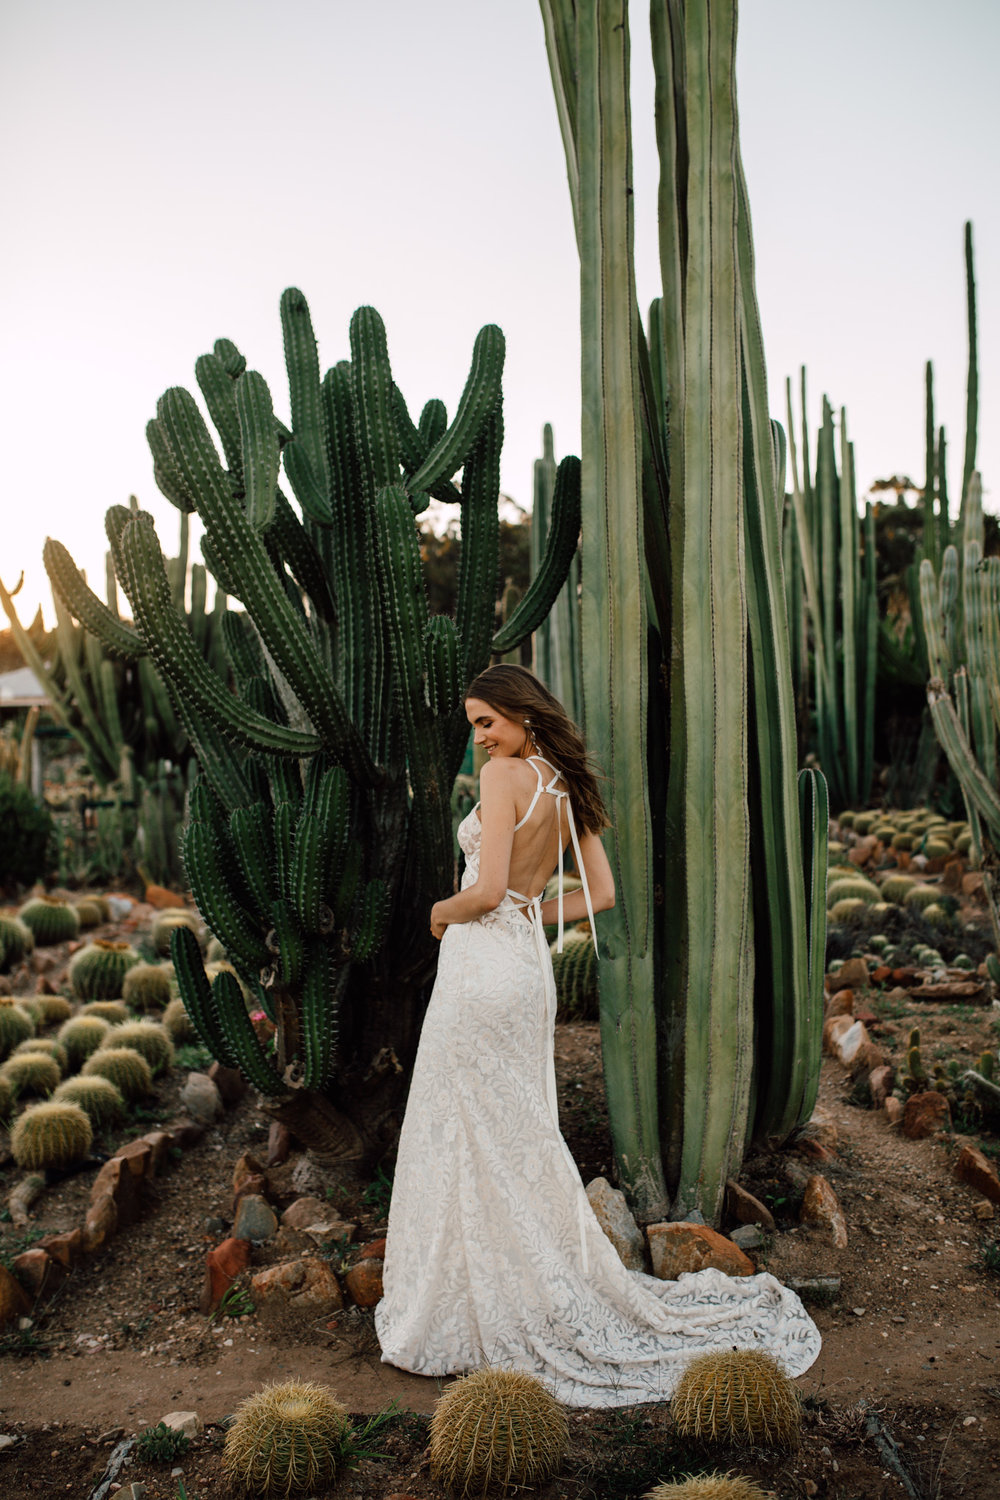 Cape-Town-Pia-Anna-Christian-Wedding-Photography-South-Africa-Bride-Cactus-9.jpg